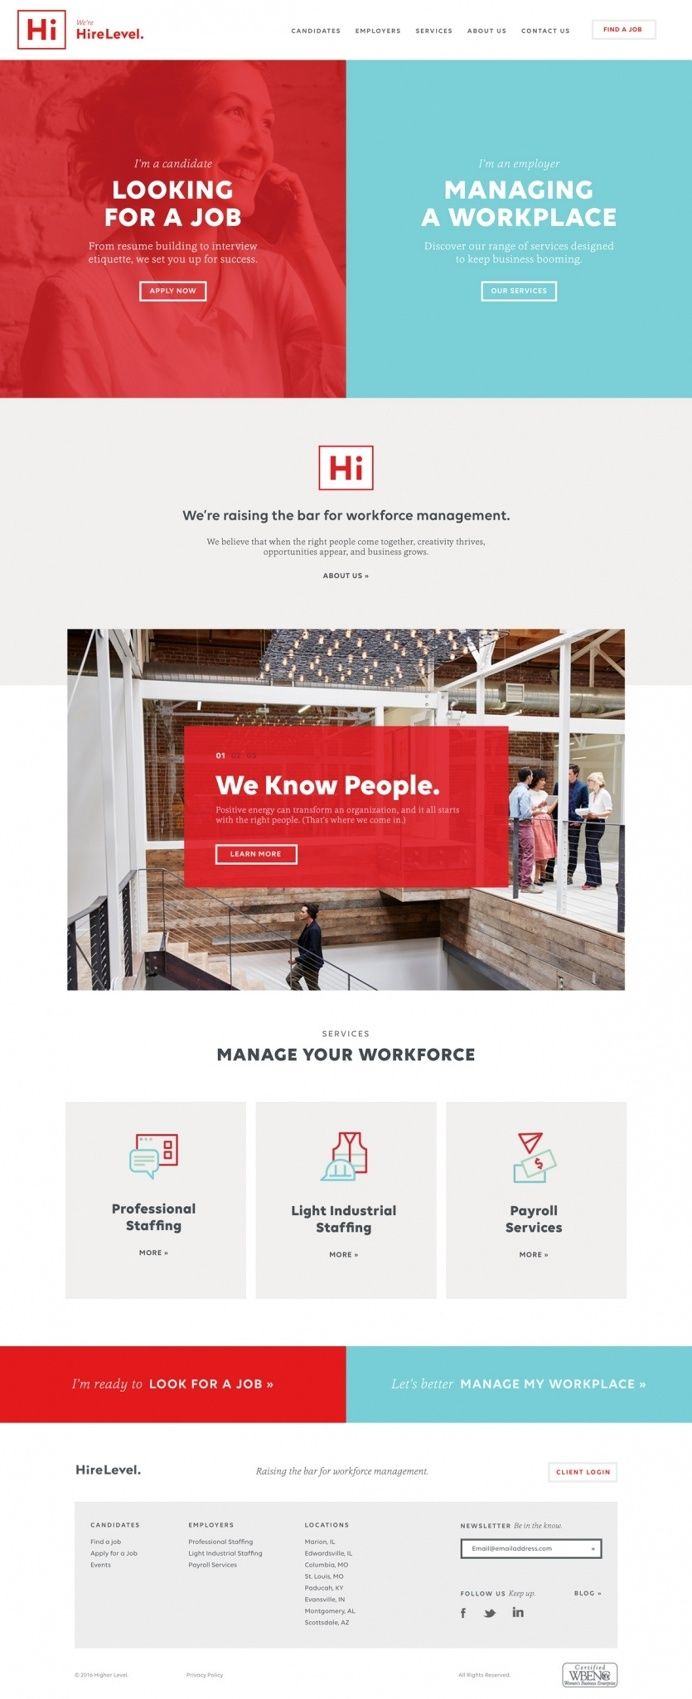 Hire level recruiting job website webdesign beautiful minimal business award site of the day best beauty mindsparkle mag designblog curation in Websites We Love